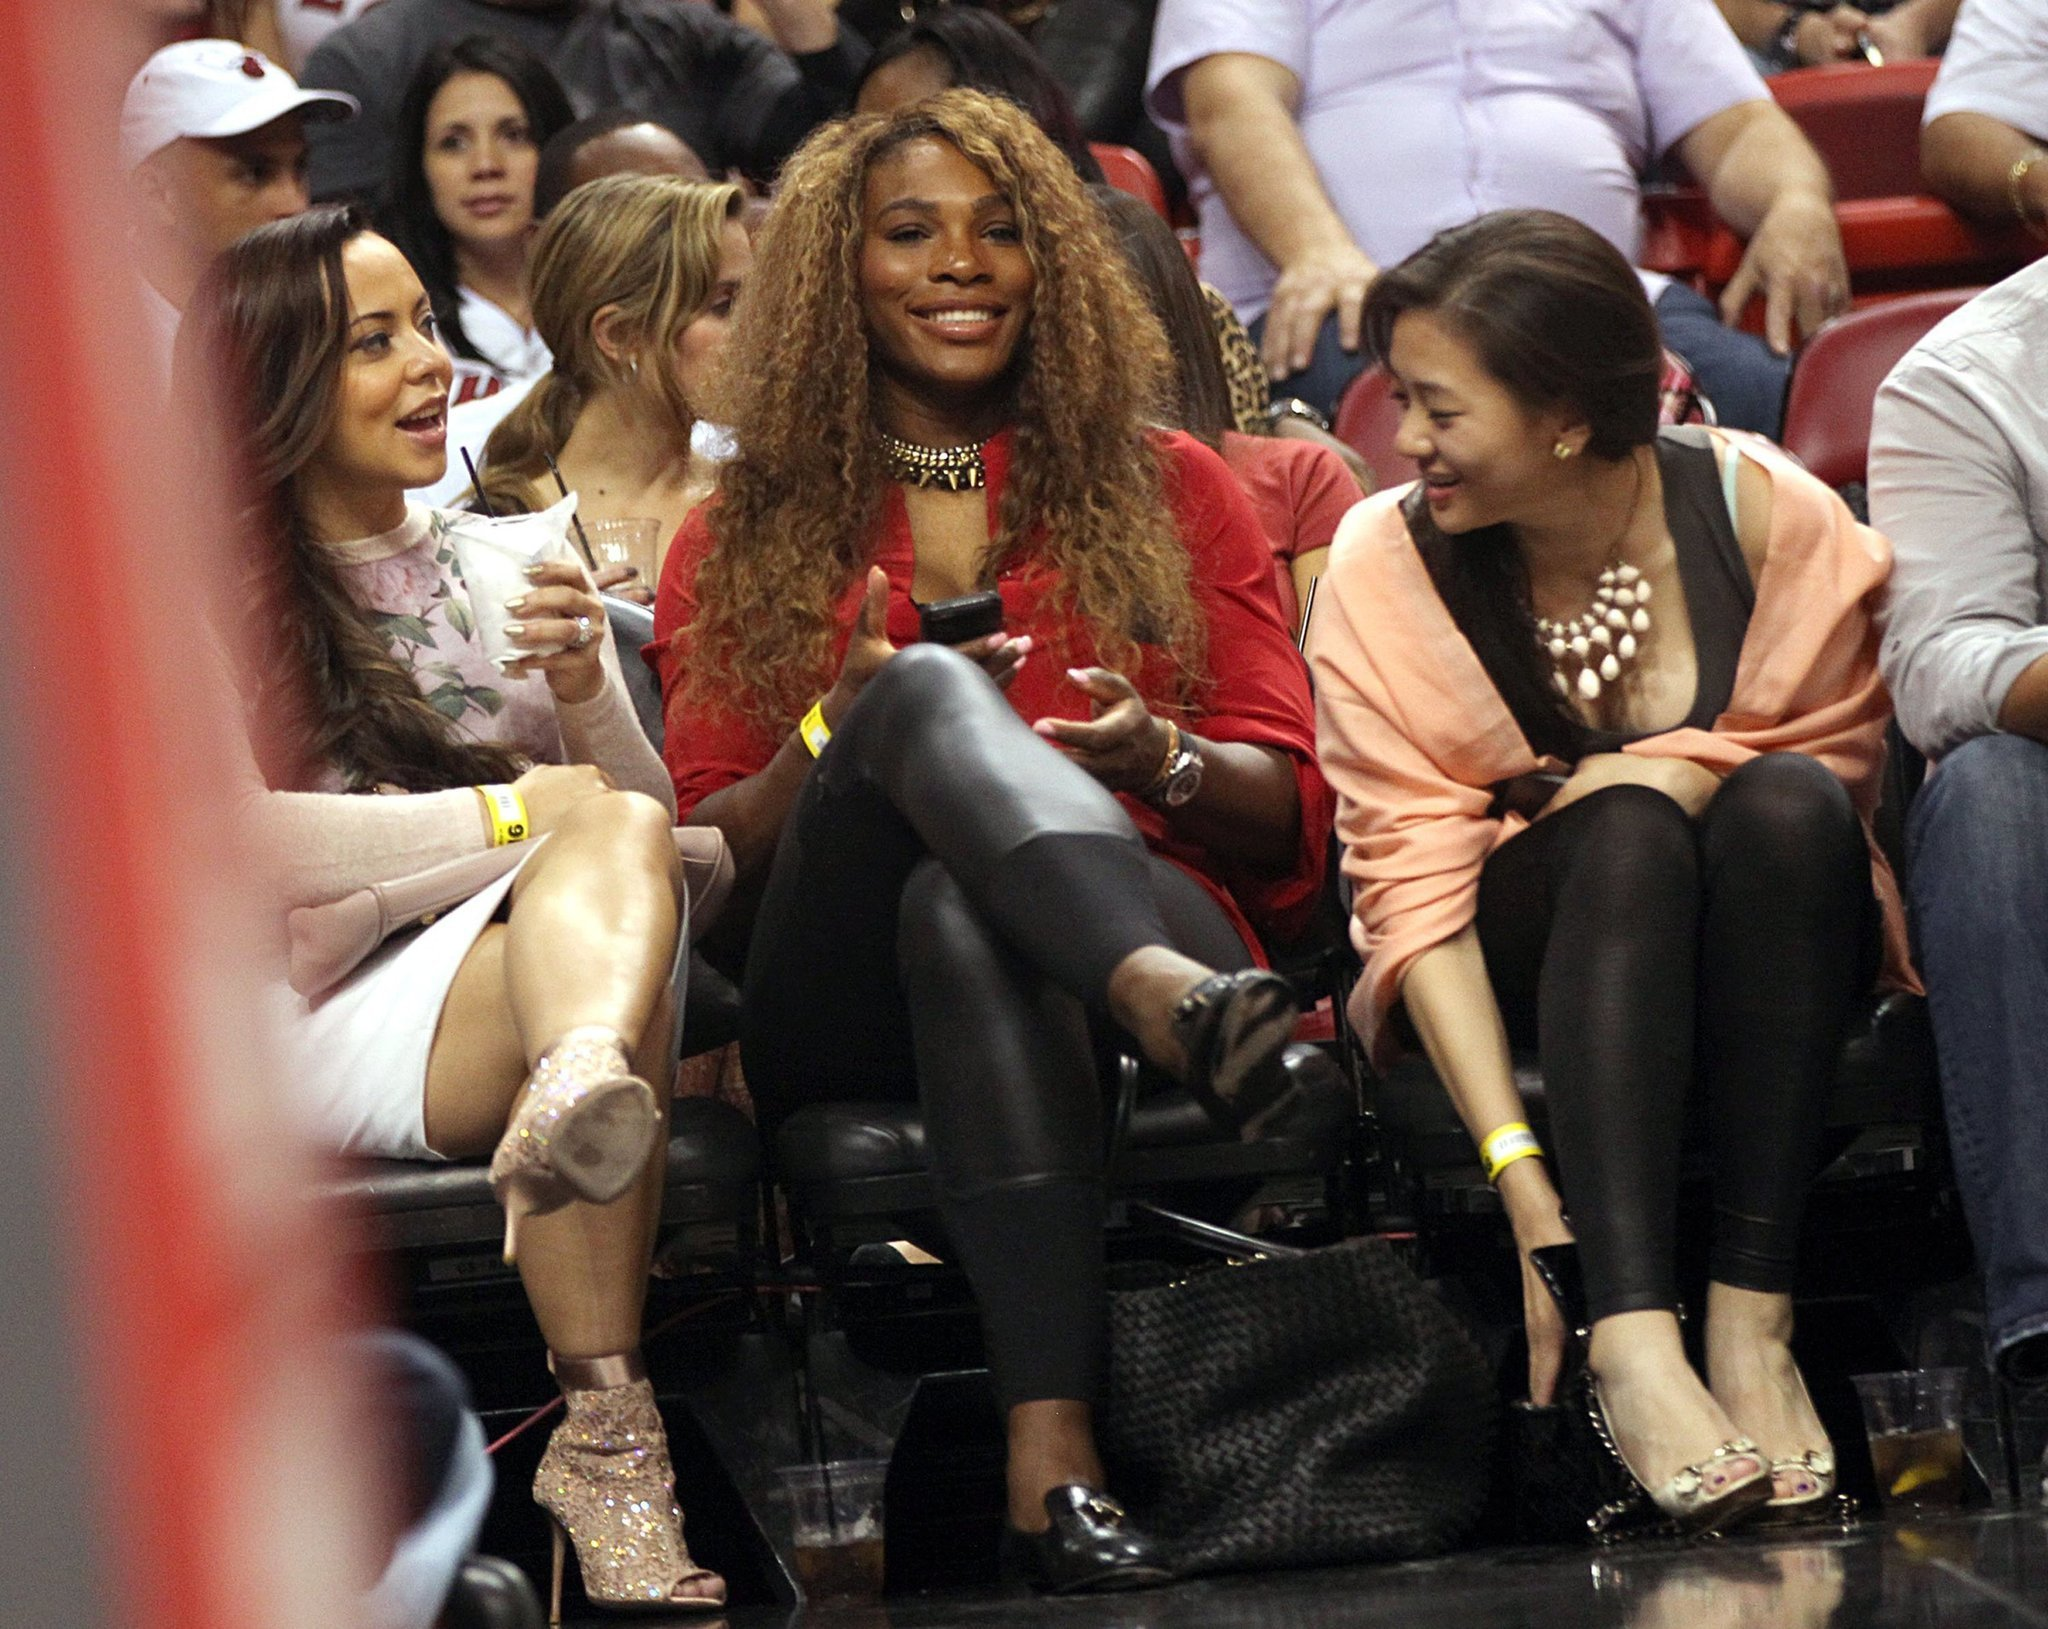 Celeb-spotting around South Florida - Serena Williams